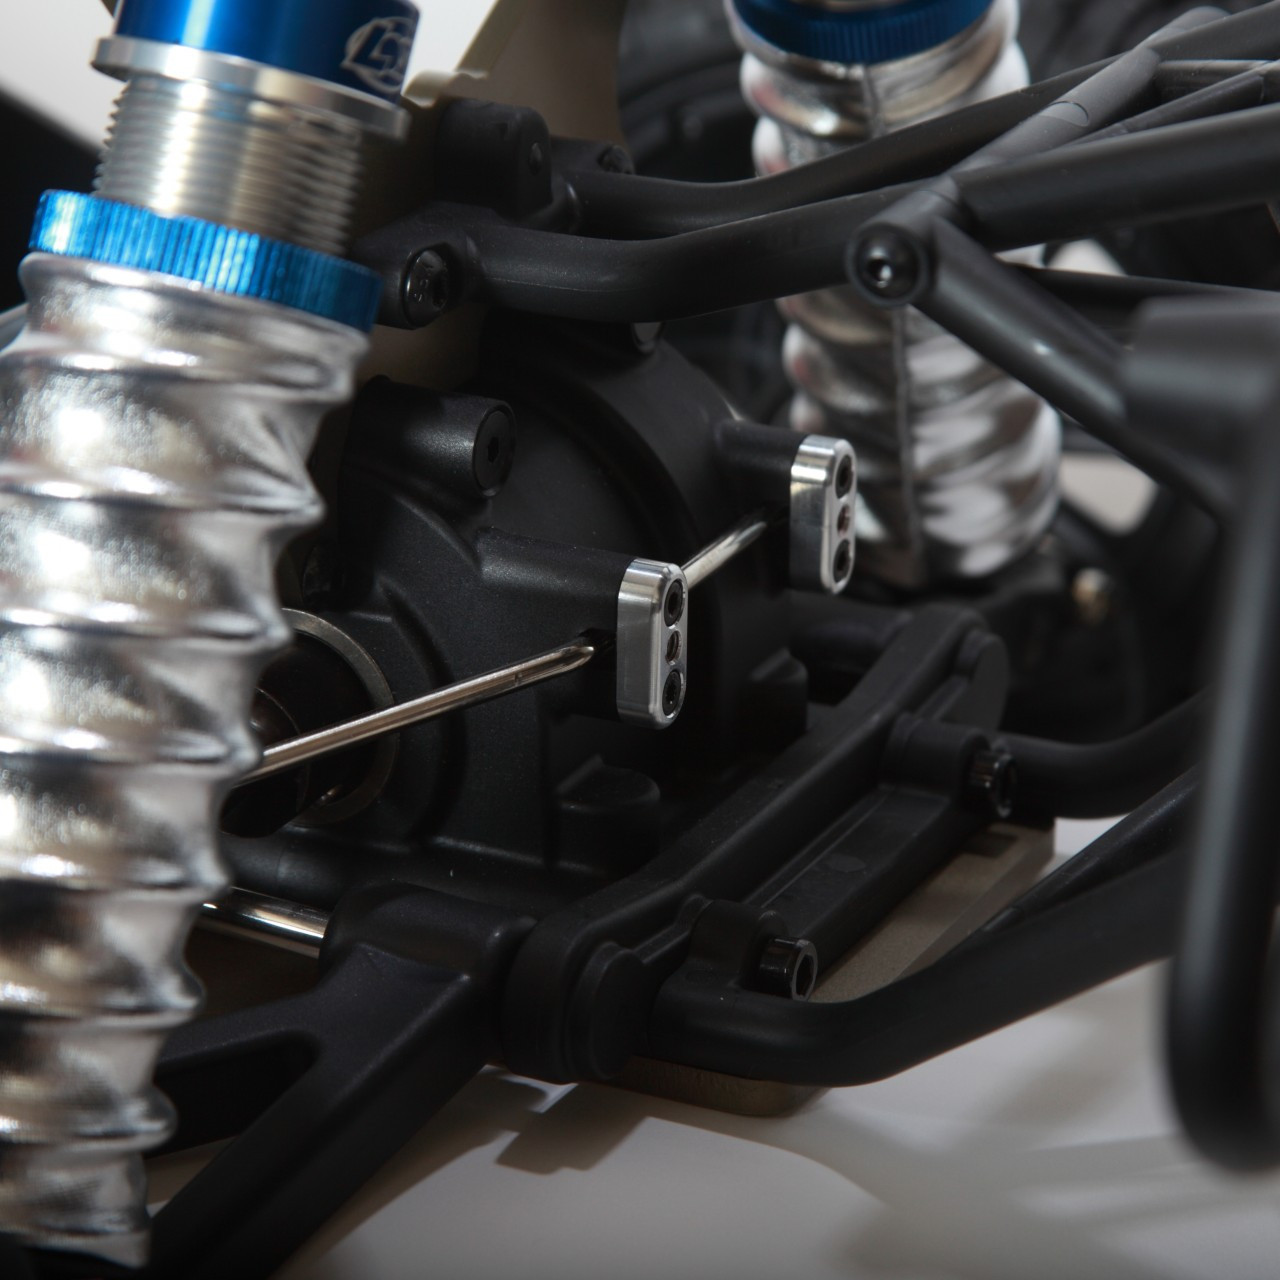 Swaybar clamps shown mounted on our shop 5ive-T truck.